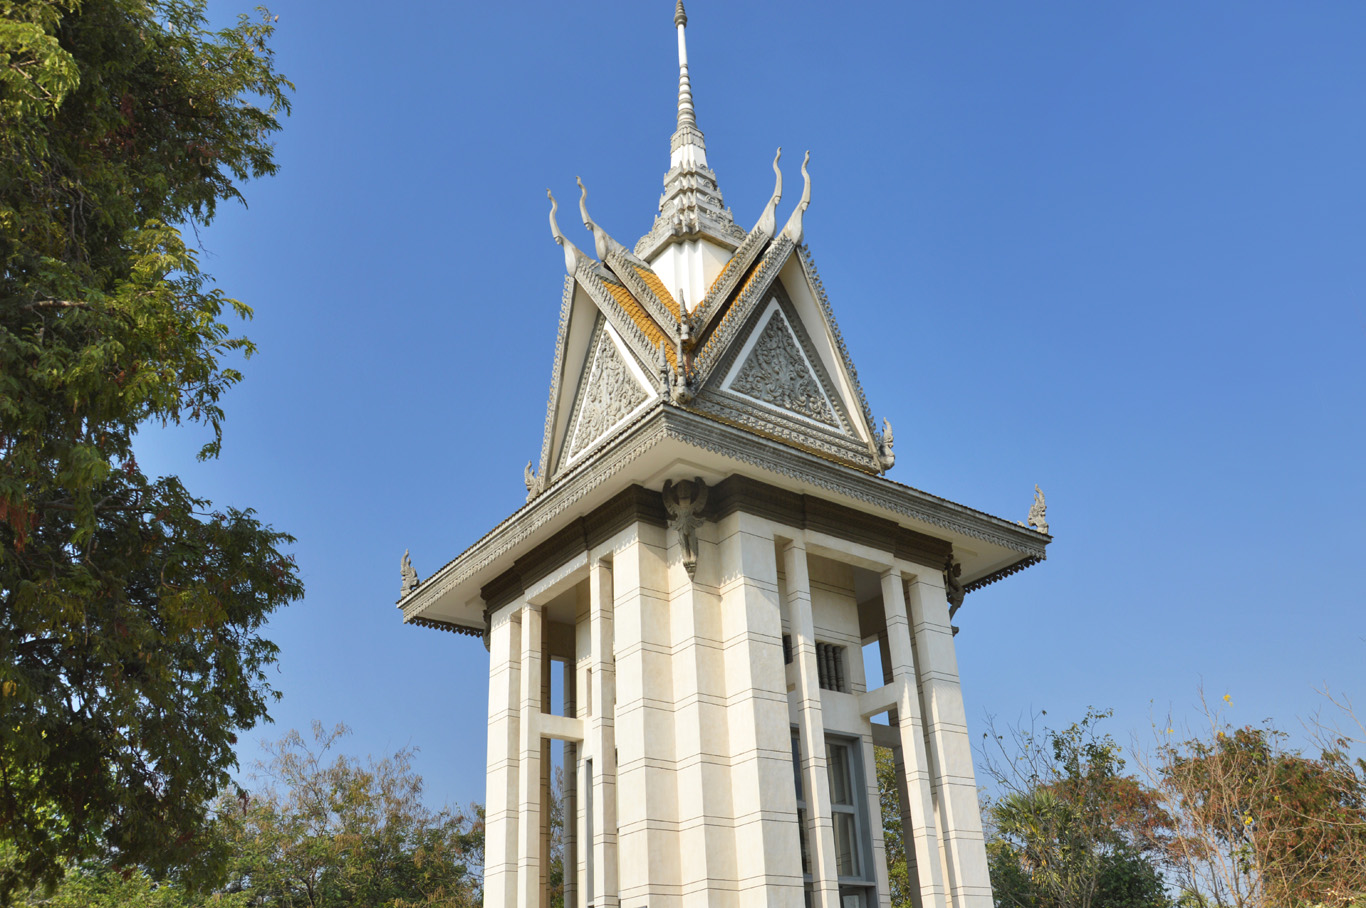 The Killing Fields shrine - filled with skulls and bones of the victims